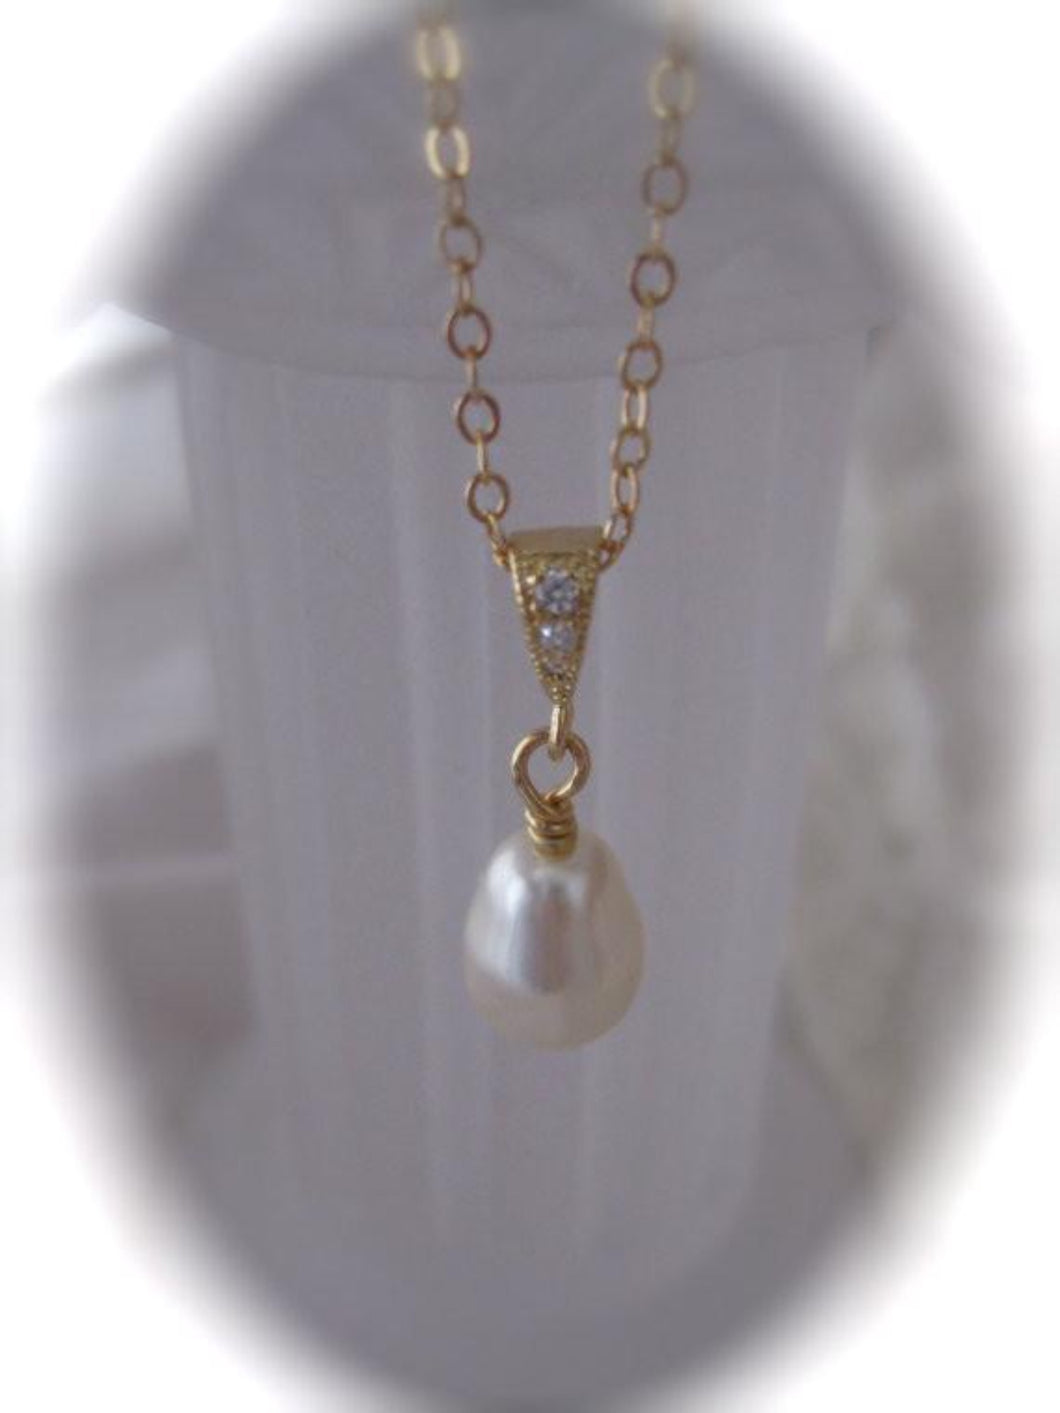 Pearl and gold necklace wedding jewelry - Clairesbridal - 1